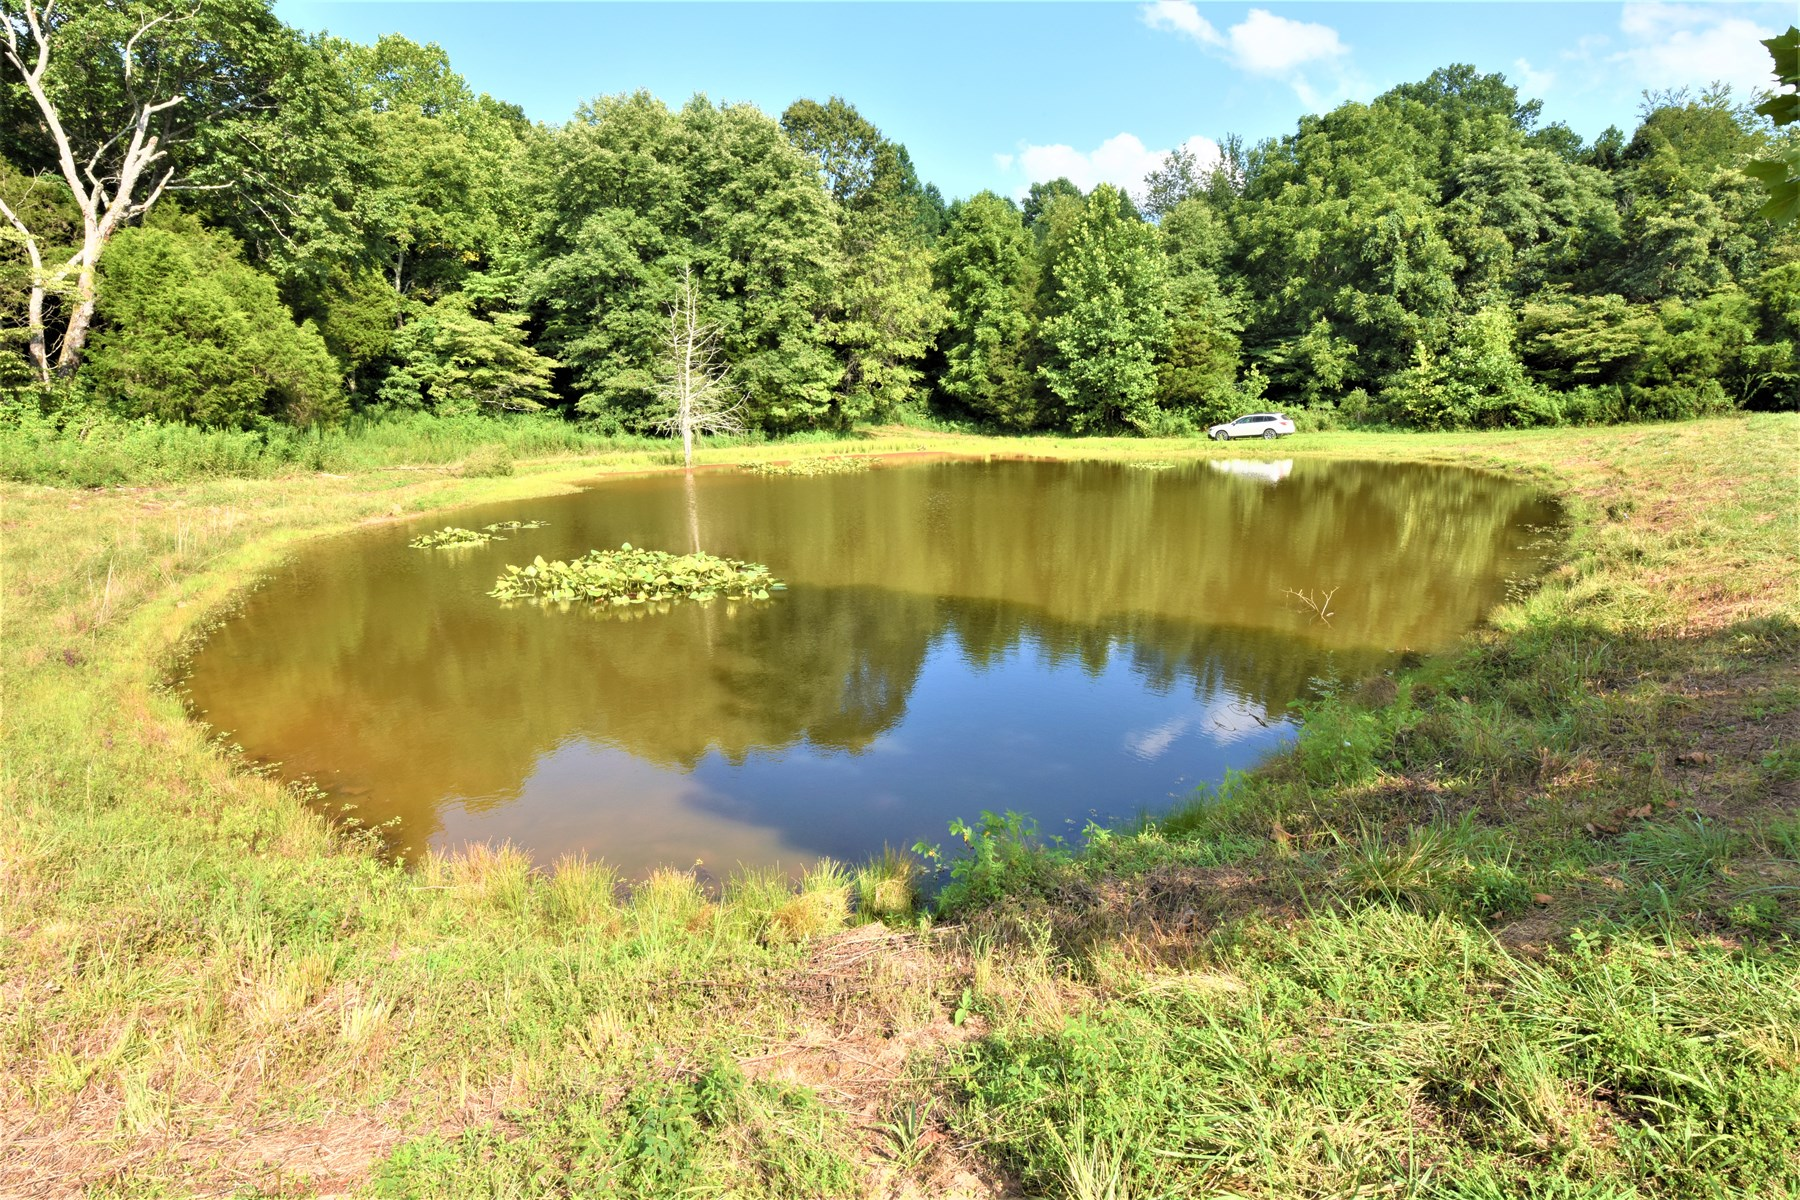 Hunting Land Fishing Home Site Pond, ATVs, Family Recreation